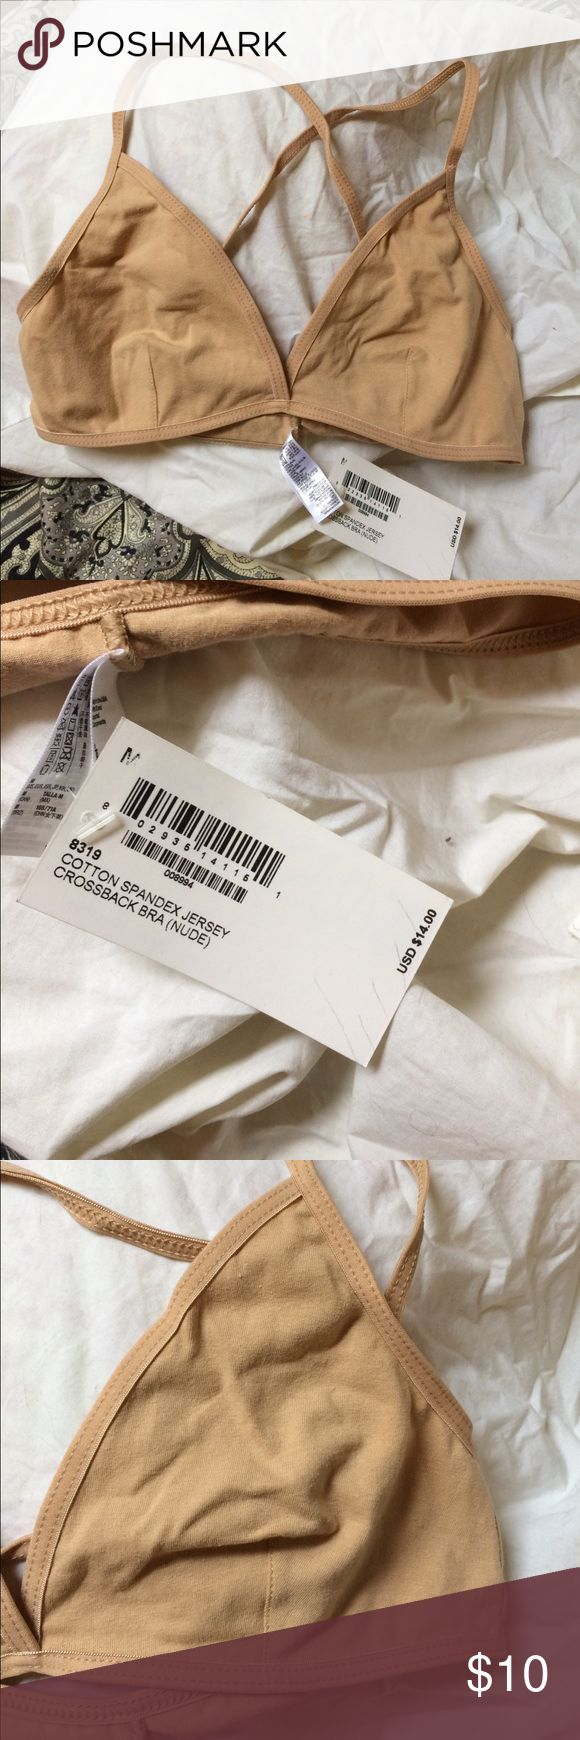 AA cotton Spandex crossback Bra Nude colored cotton Spandex jersey crossback bra. One of my favorites and super comfy. Brand new with tags. American Apparel Intimates & Sleepwear Bras